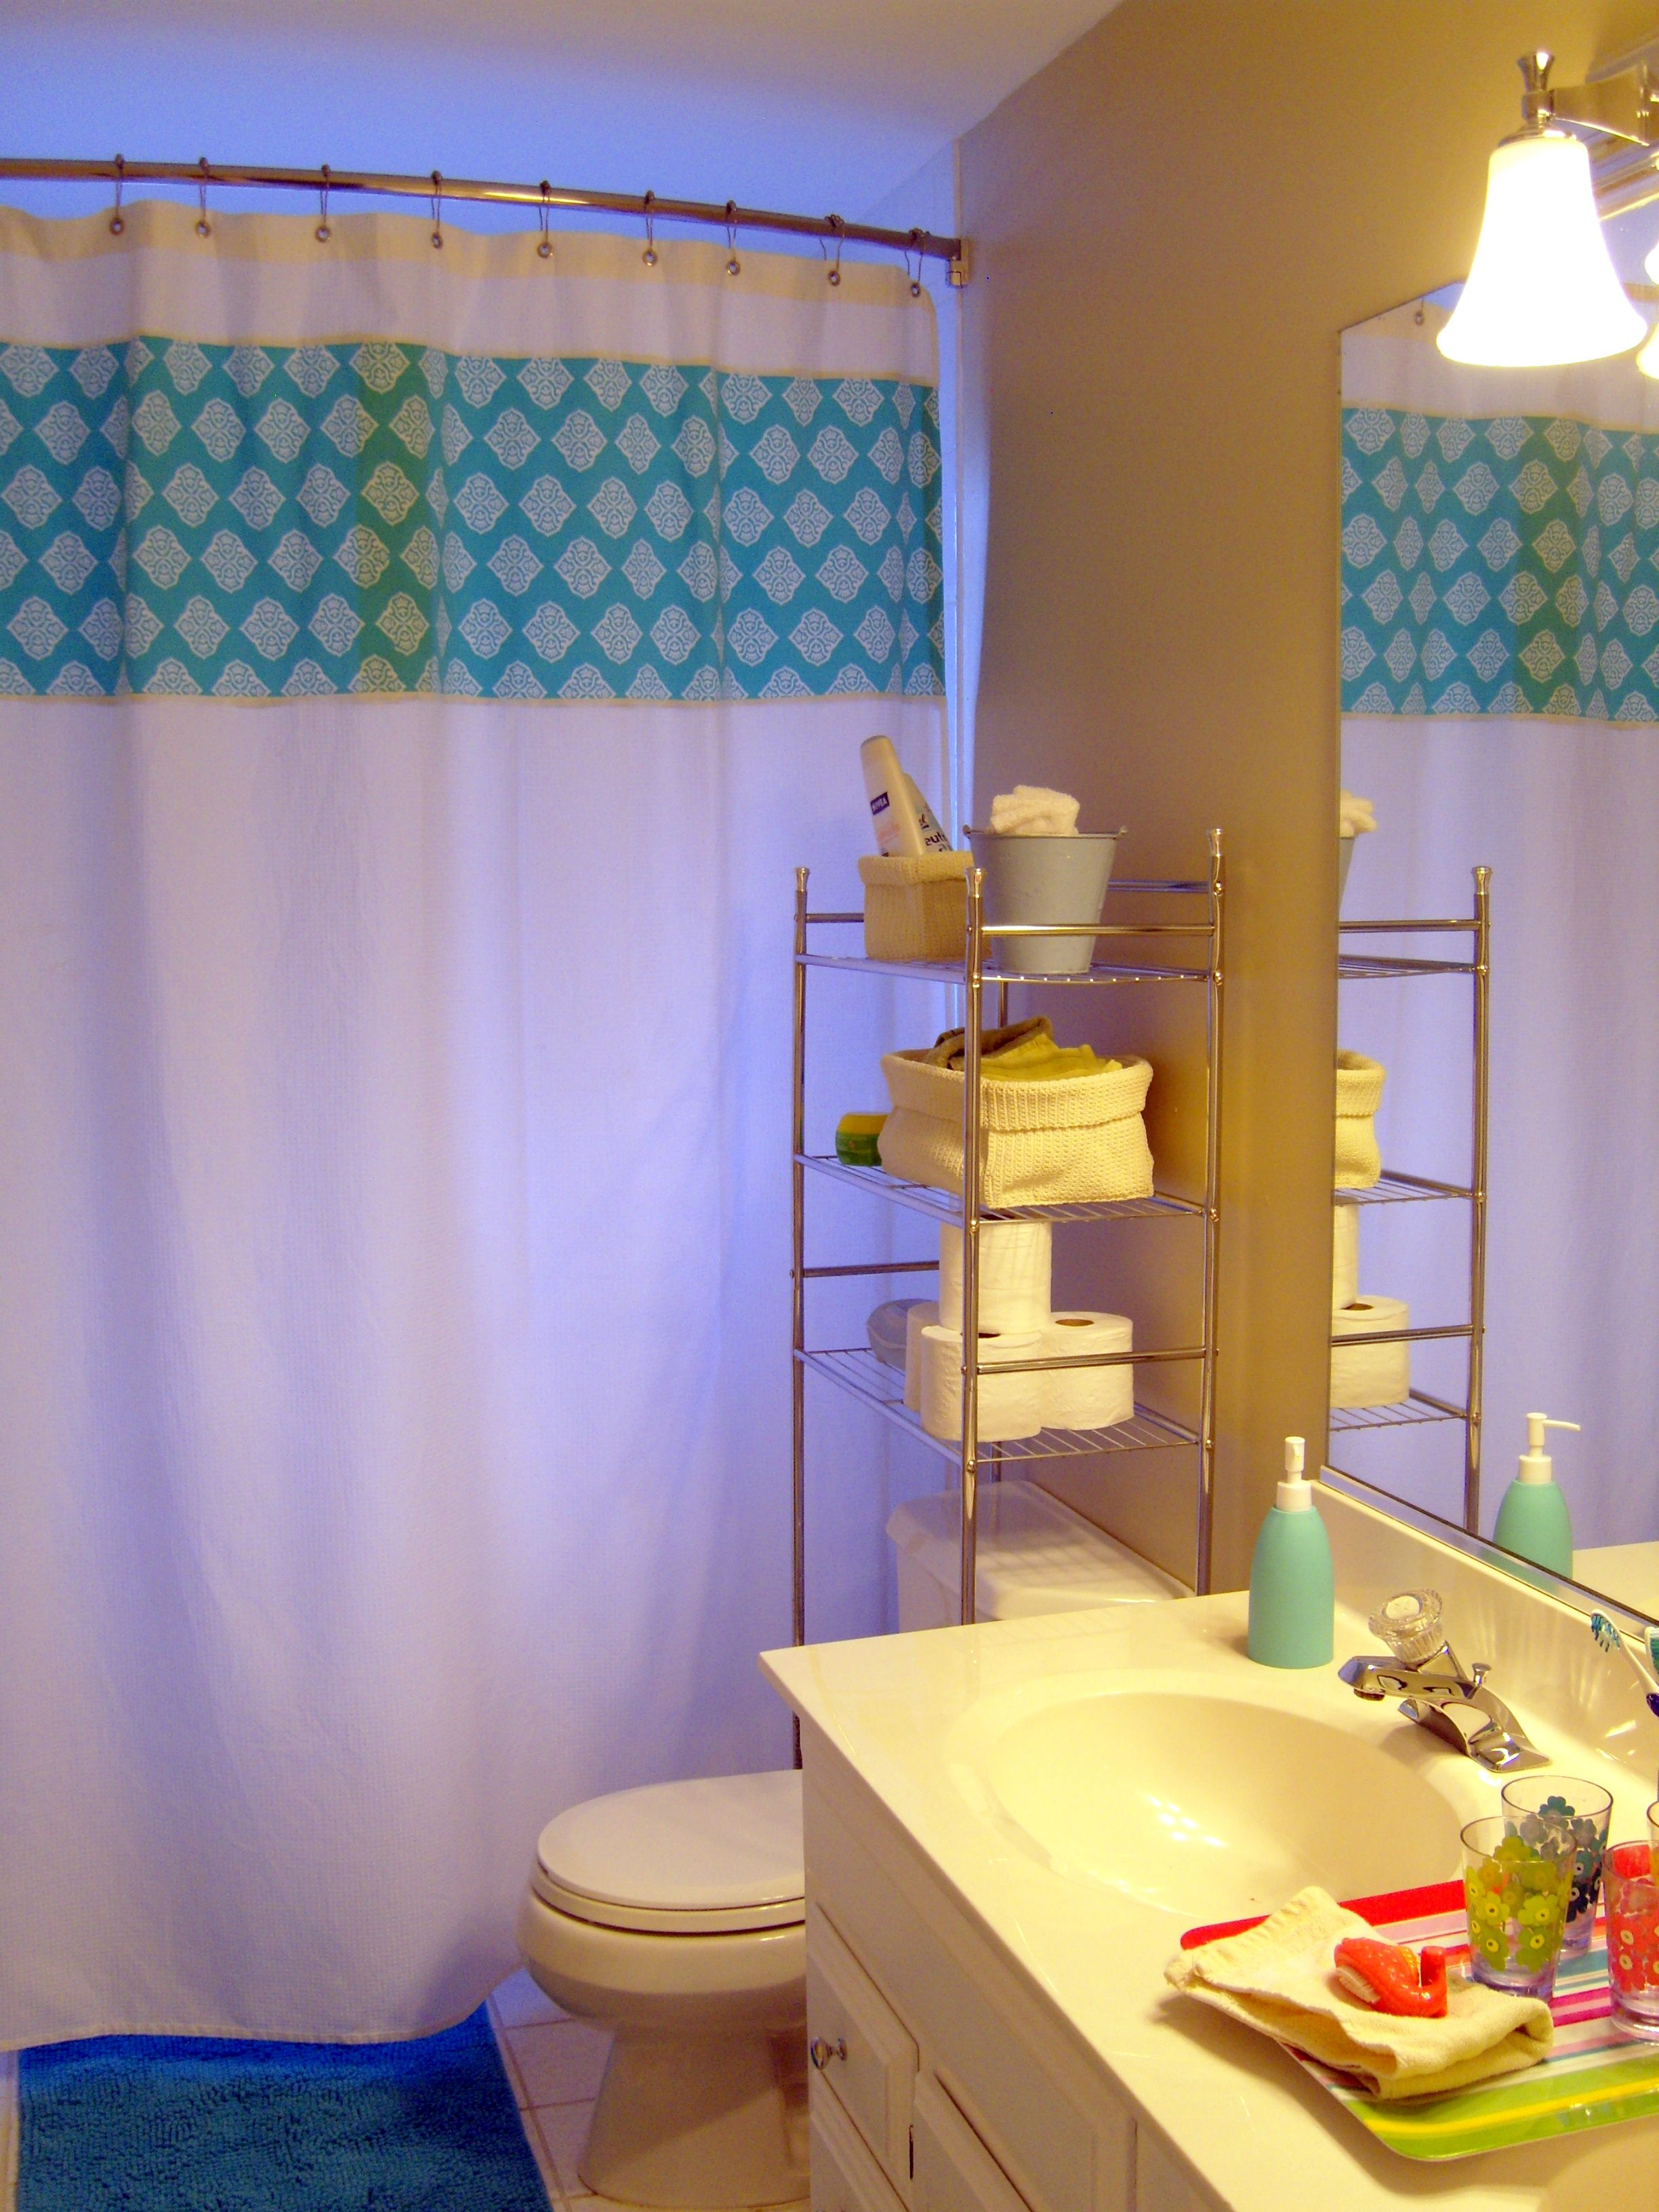 Small Kids Bathroom Ideas With Perfect Curtain And Cool Vanity - Kids bathroom mirror for small bathroom ideas